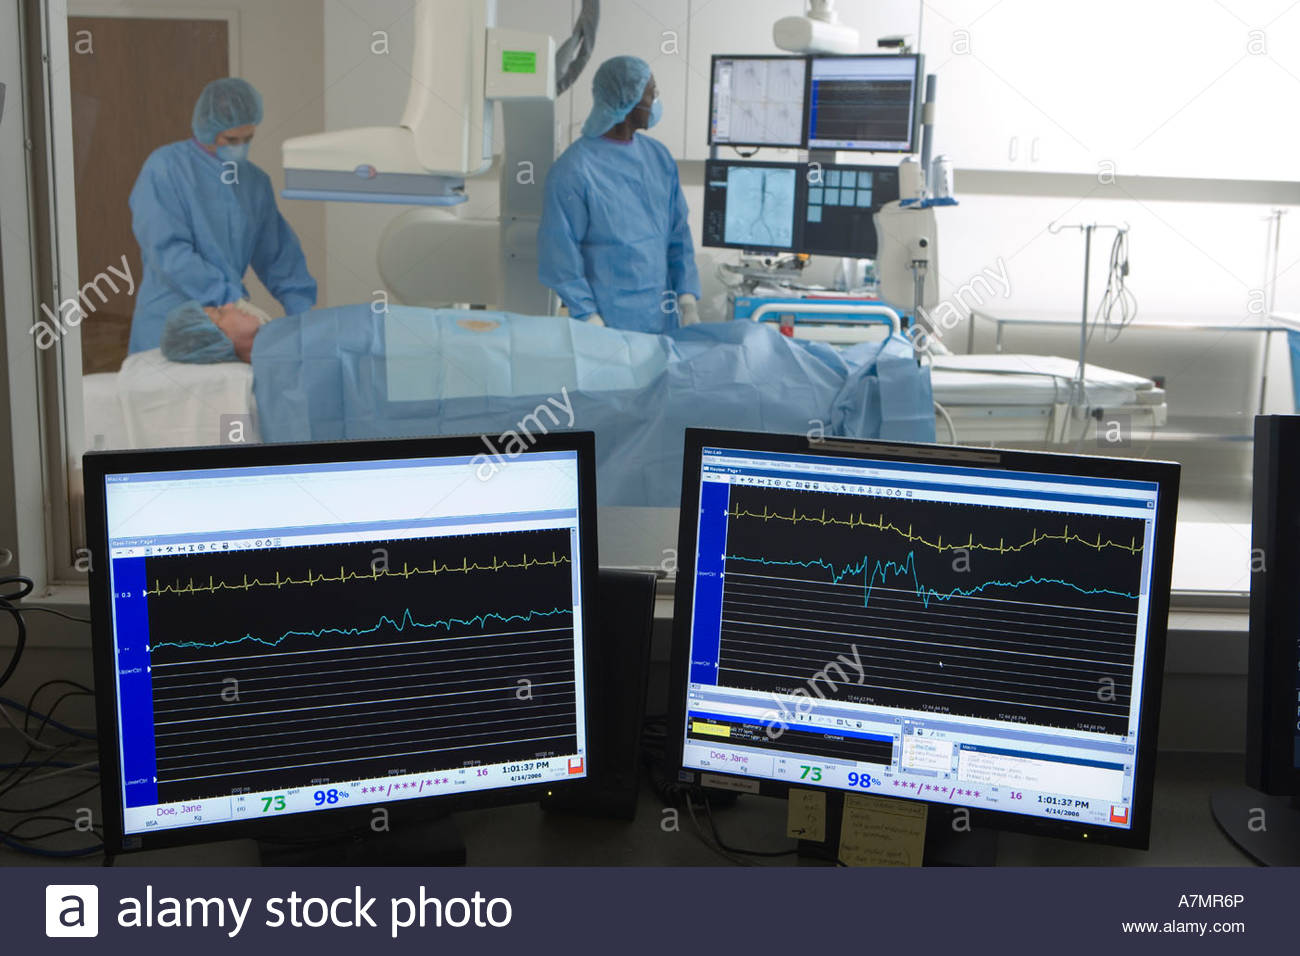 Doctors scanning patient in hospital visual monitors in foreground - Stock Image